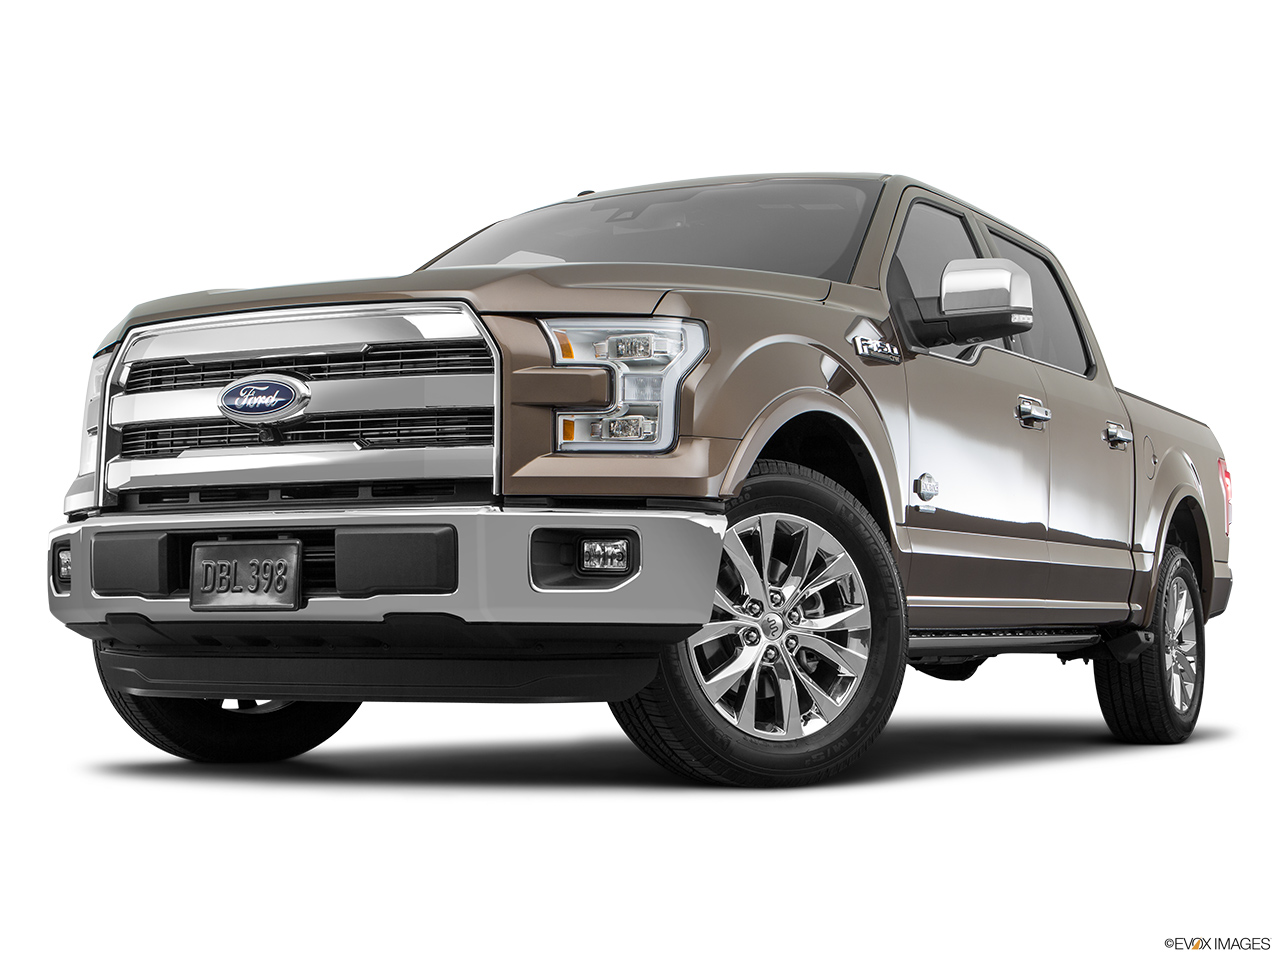 ford f 150 2017 3 5l ecoboost crew cab king ranch fx4 luxury pack in kuwait new car prices. Black Bedroom Furniture Sets. Home Design Ideas